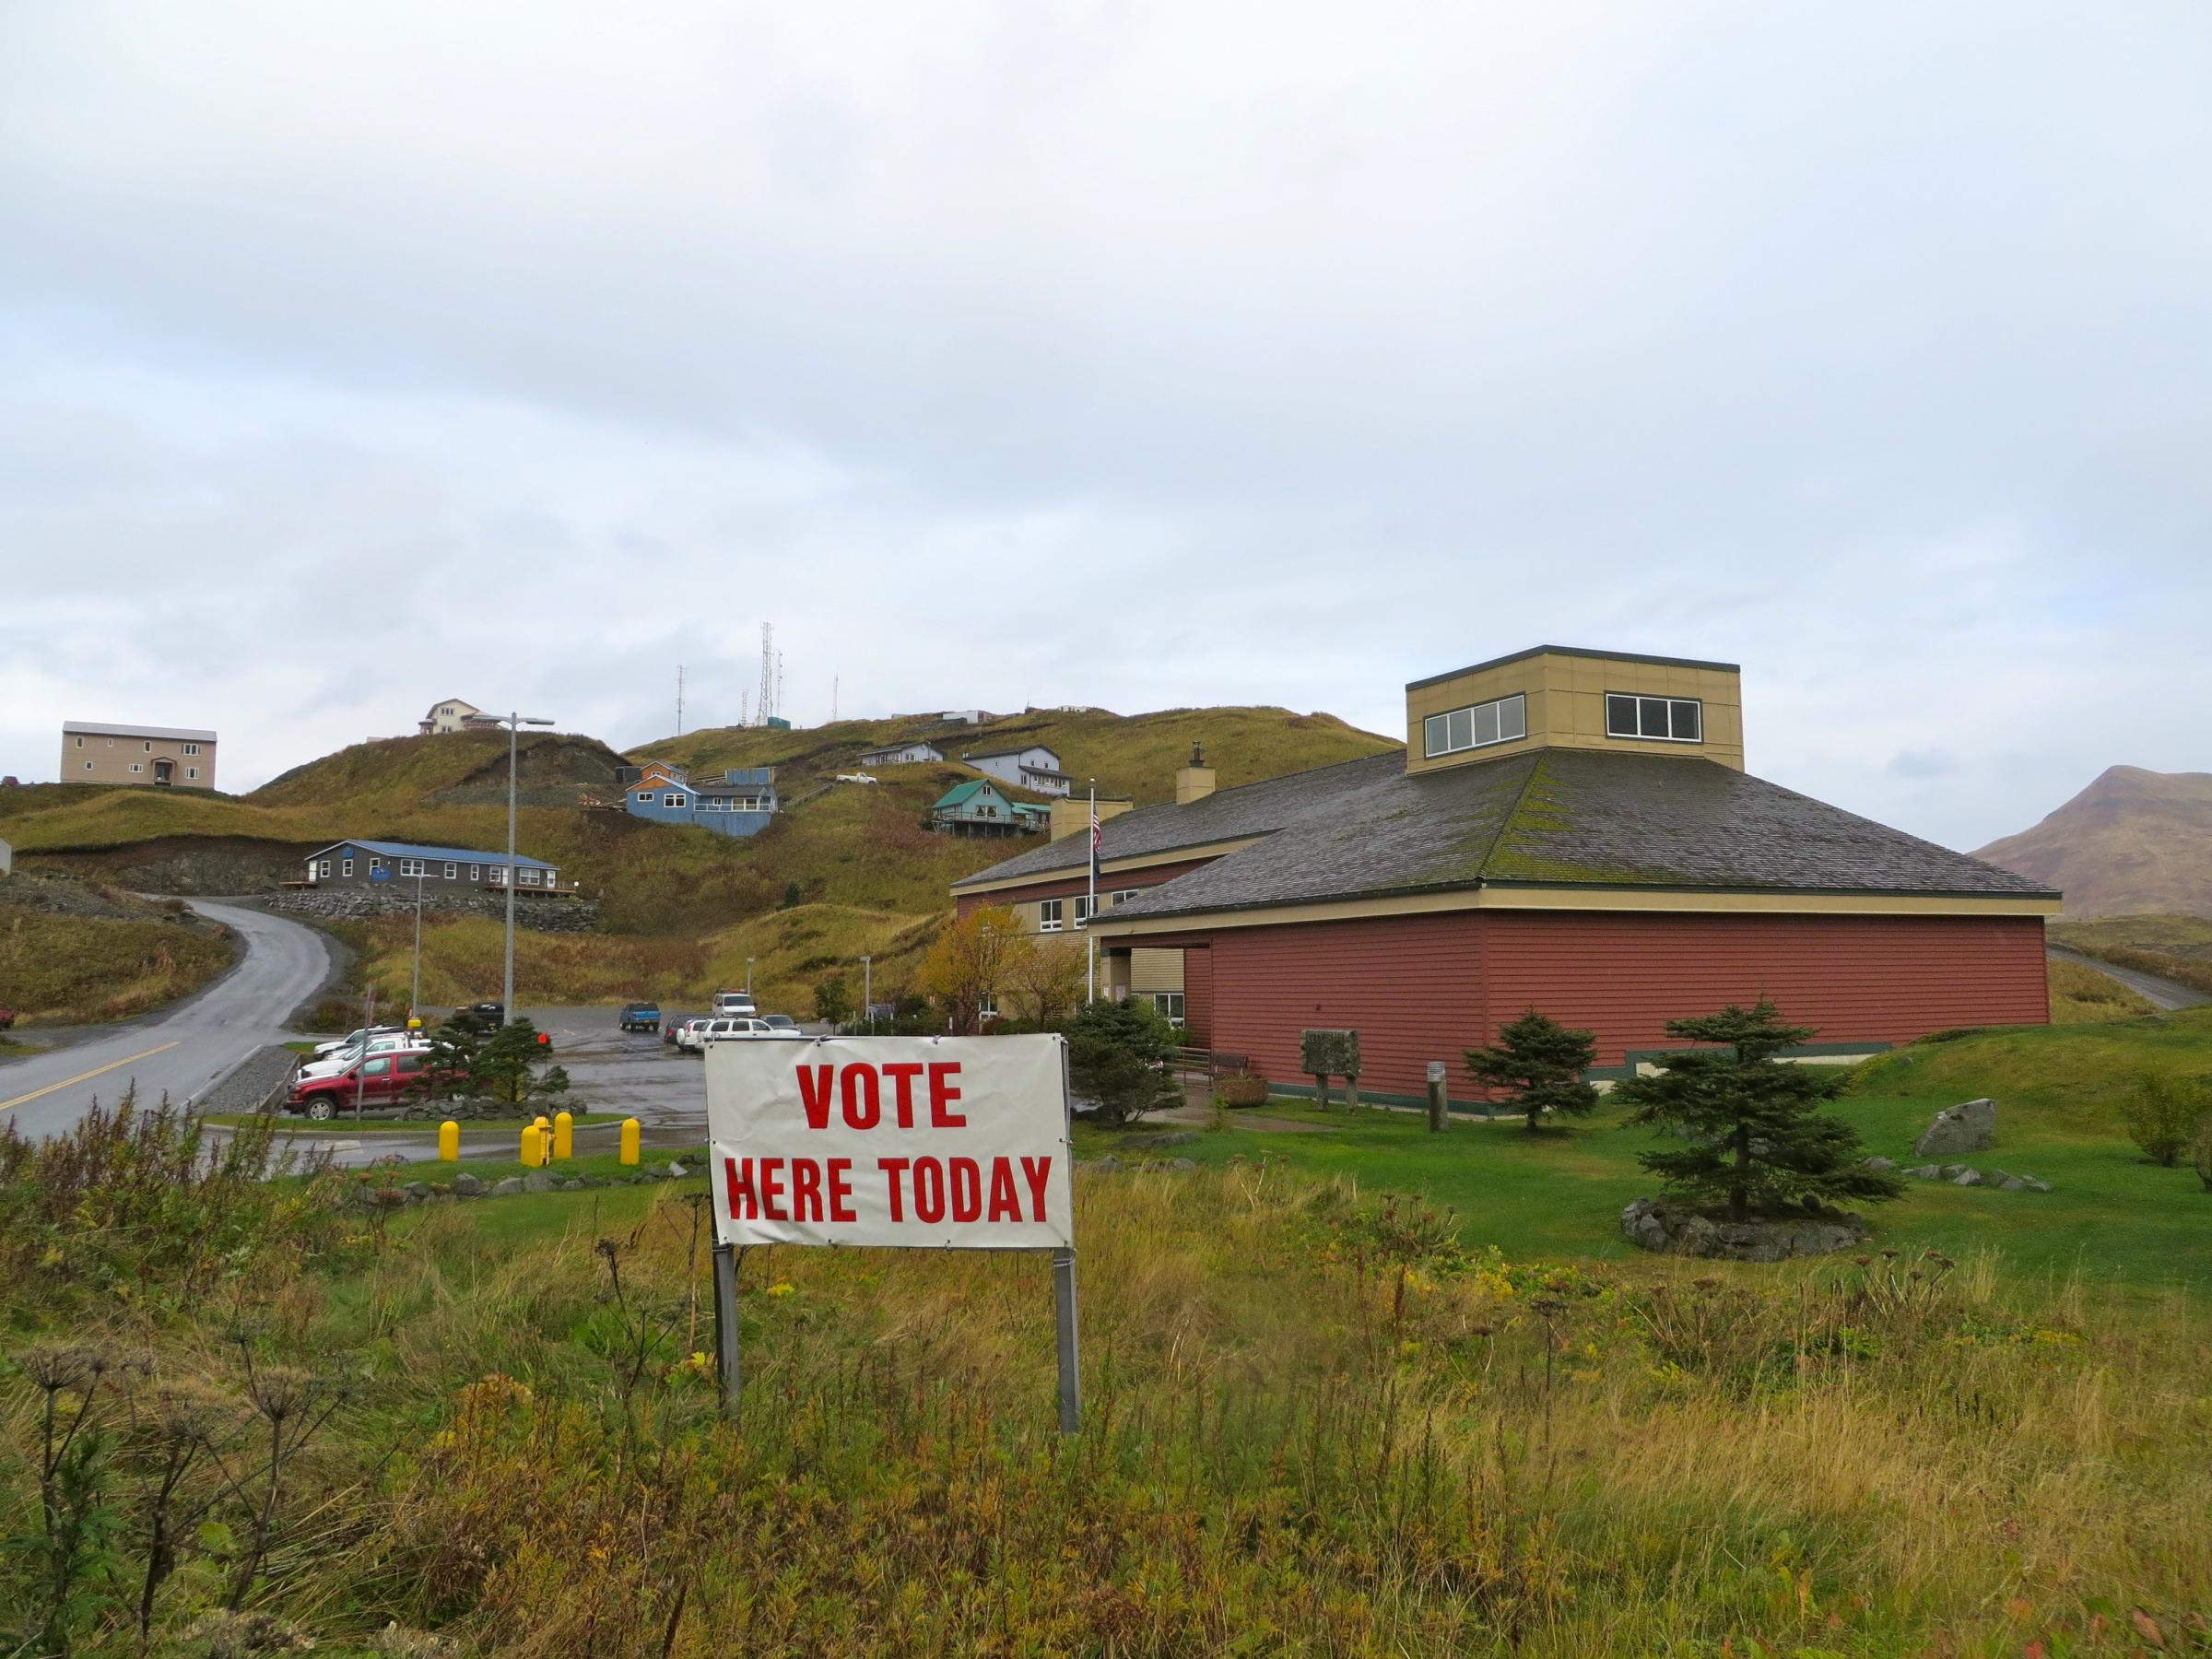 Election Day at Unalaska City Hall. (Photo by Laura Kraegel, KUCB - Unalaska)